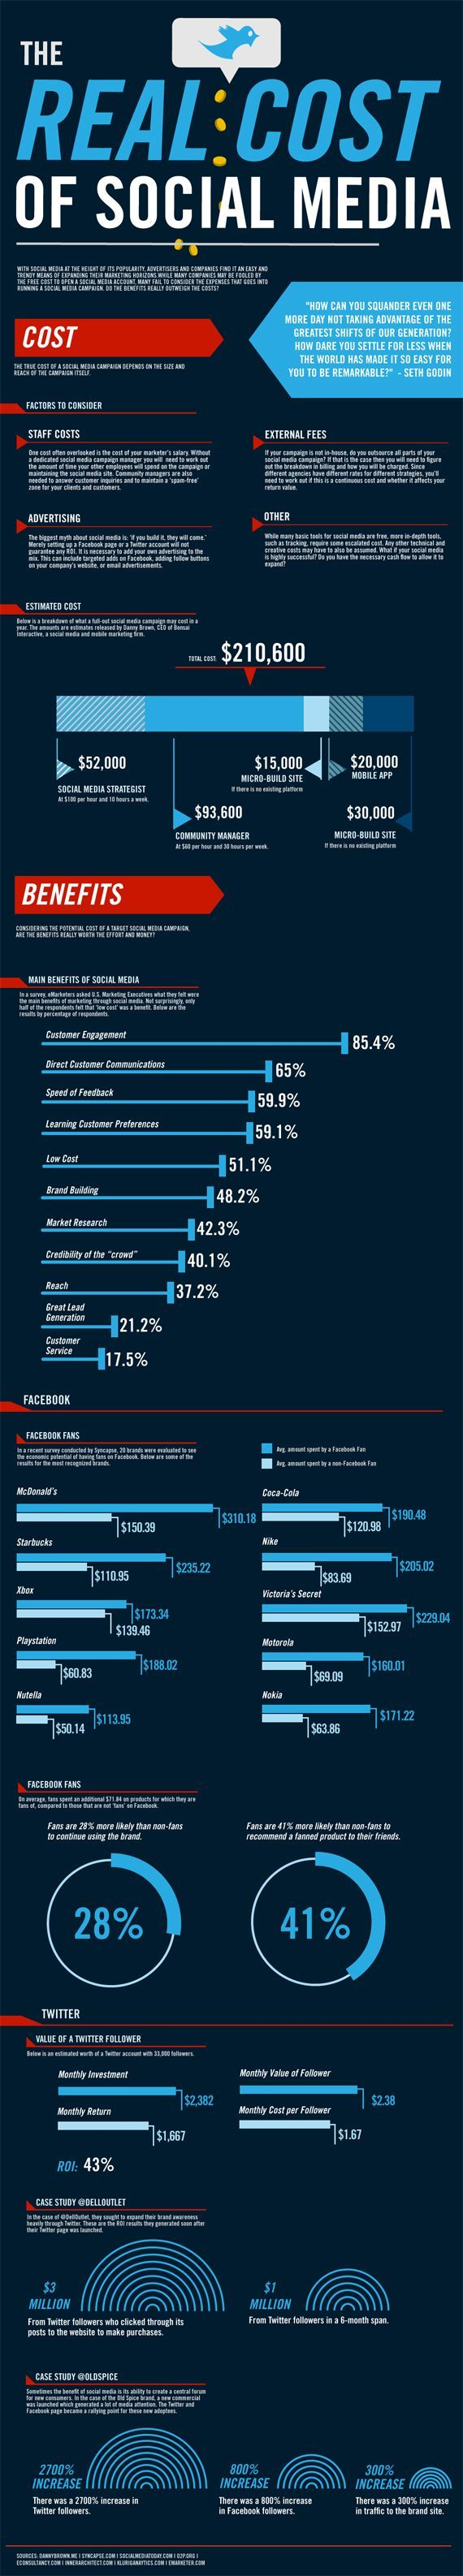 What Is the Real Cost of Social? [INFOGRAPHIC] | Social Media Today